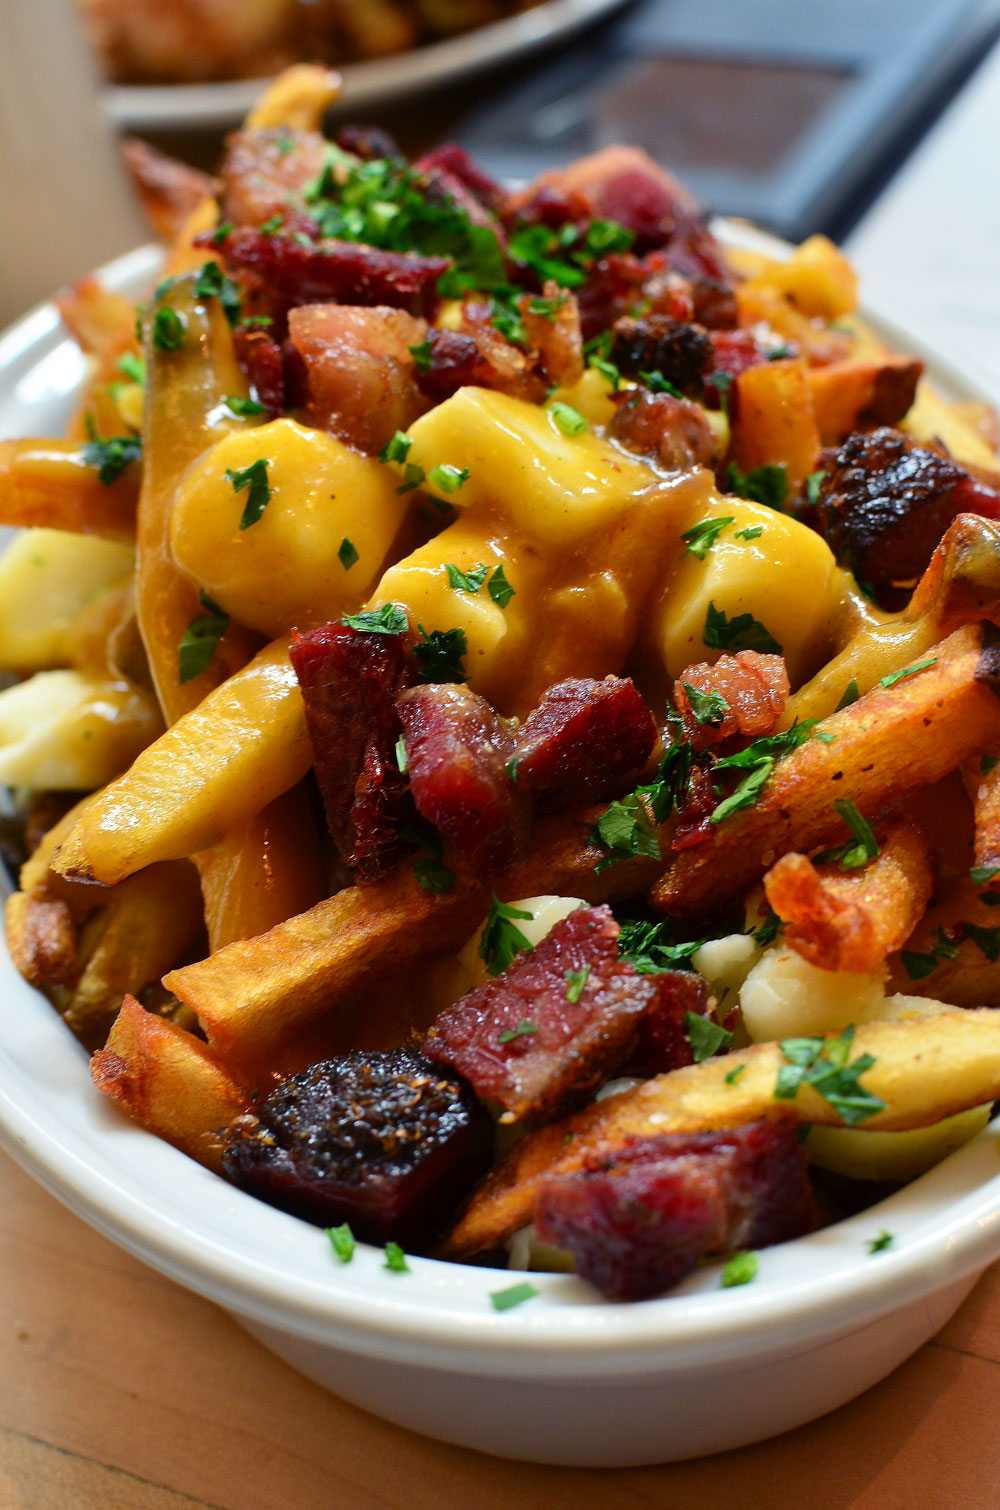 Poutine. Pastrami  and fries.